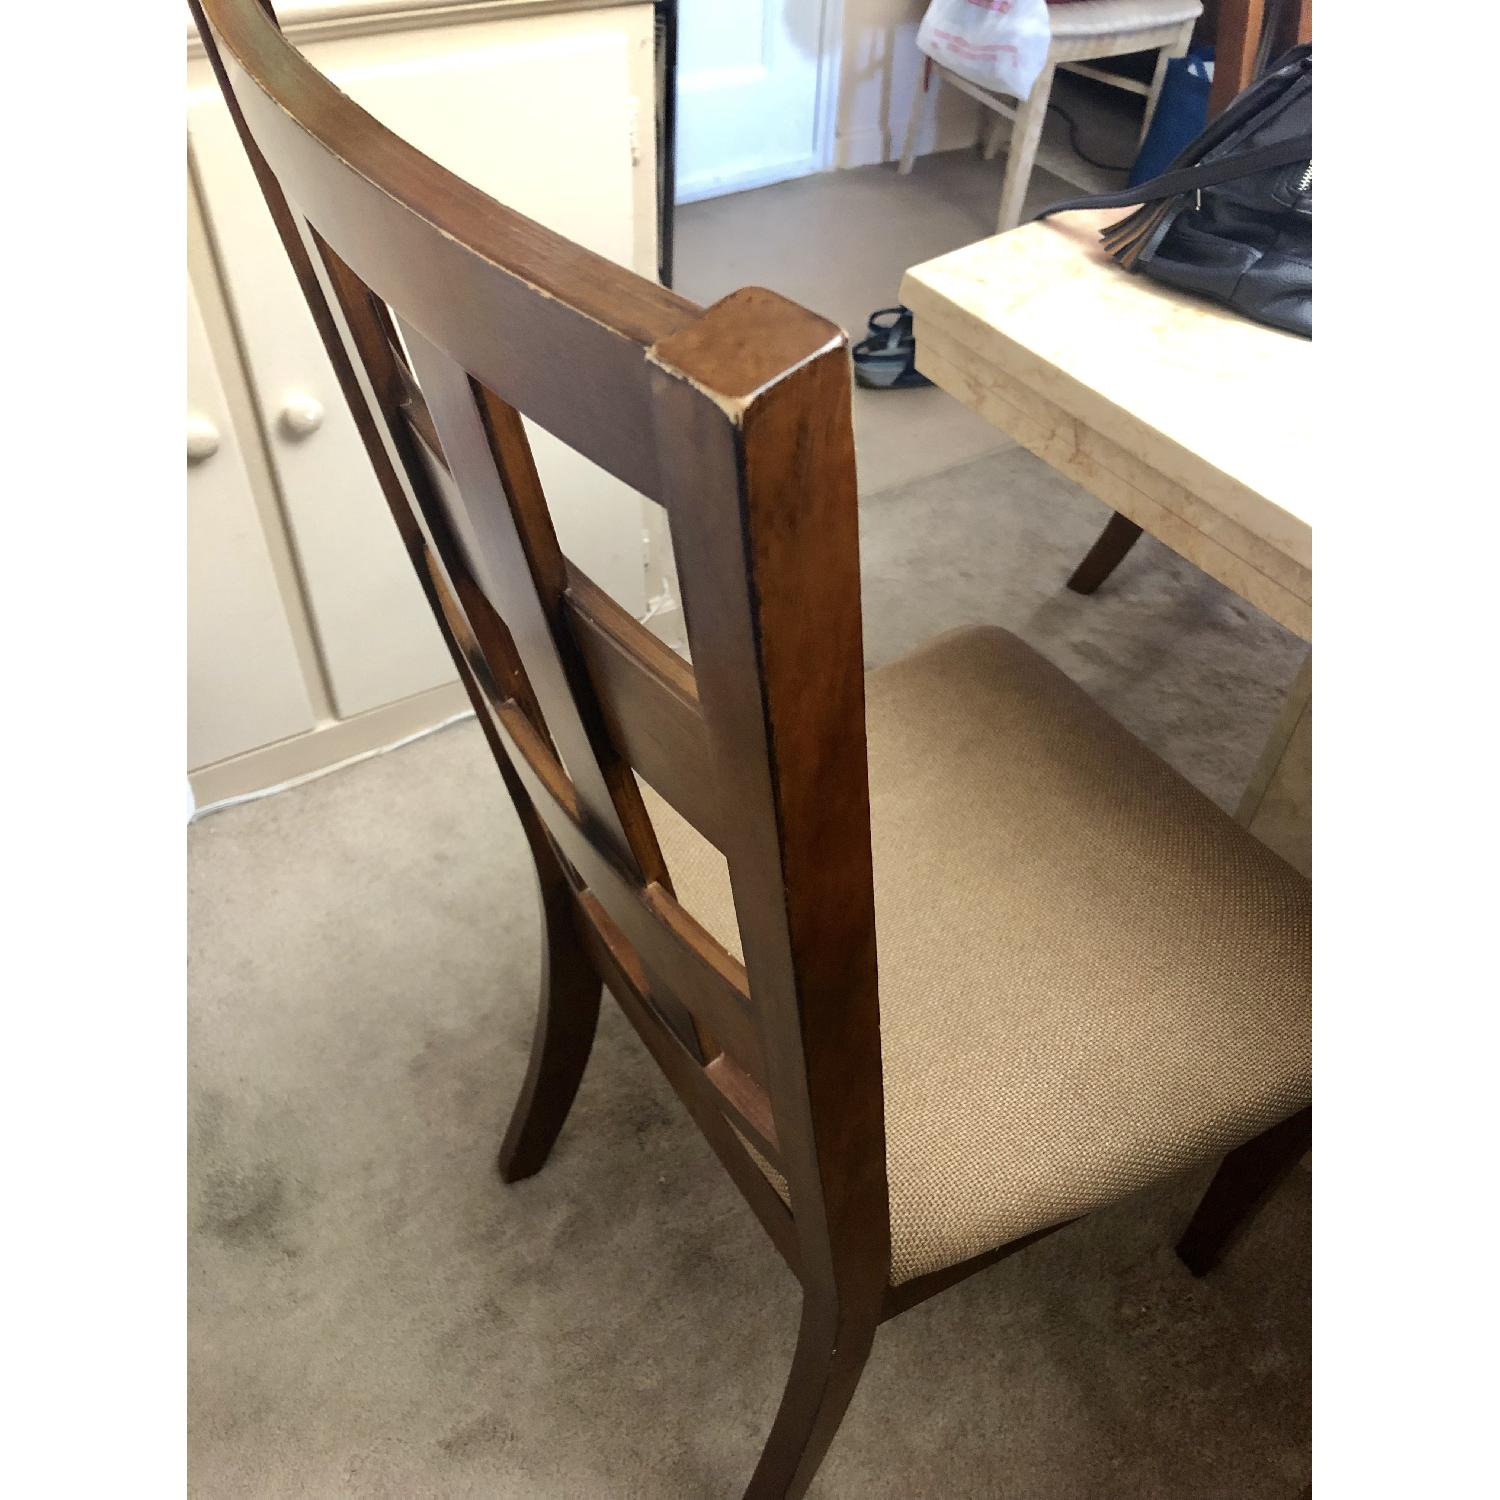 Ashley Wood Dining Chairs - image-2